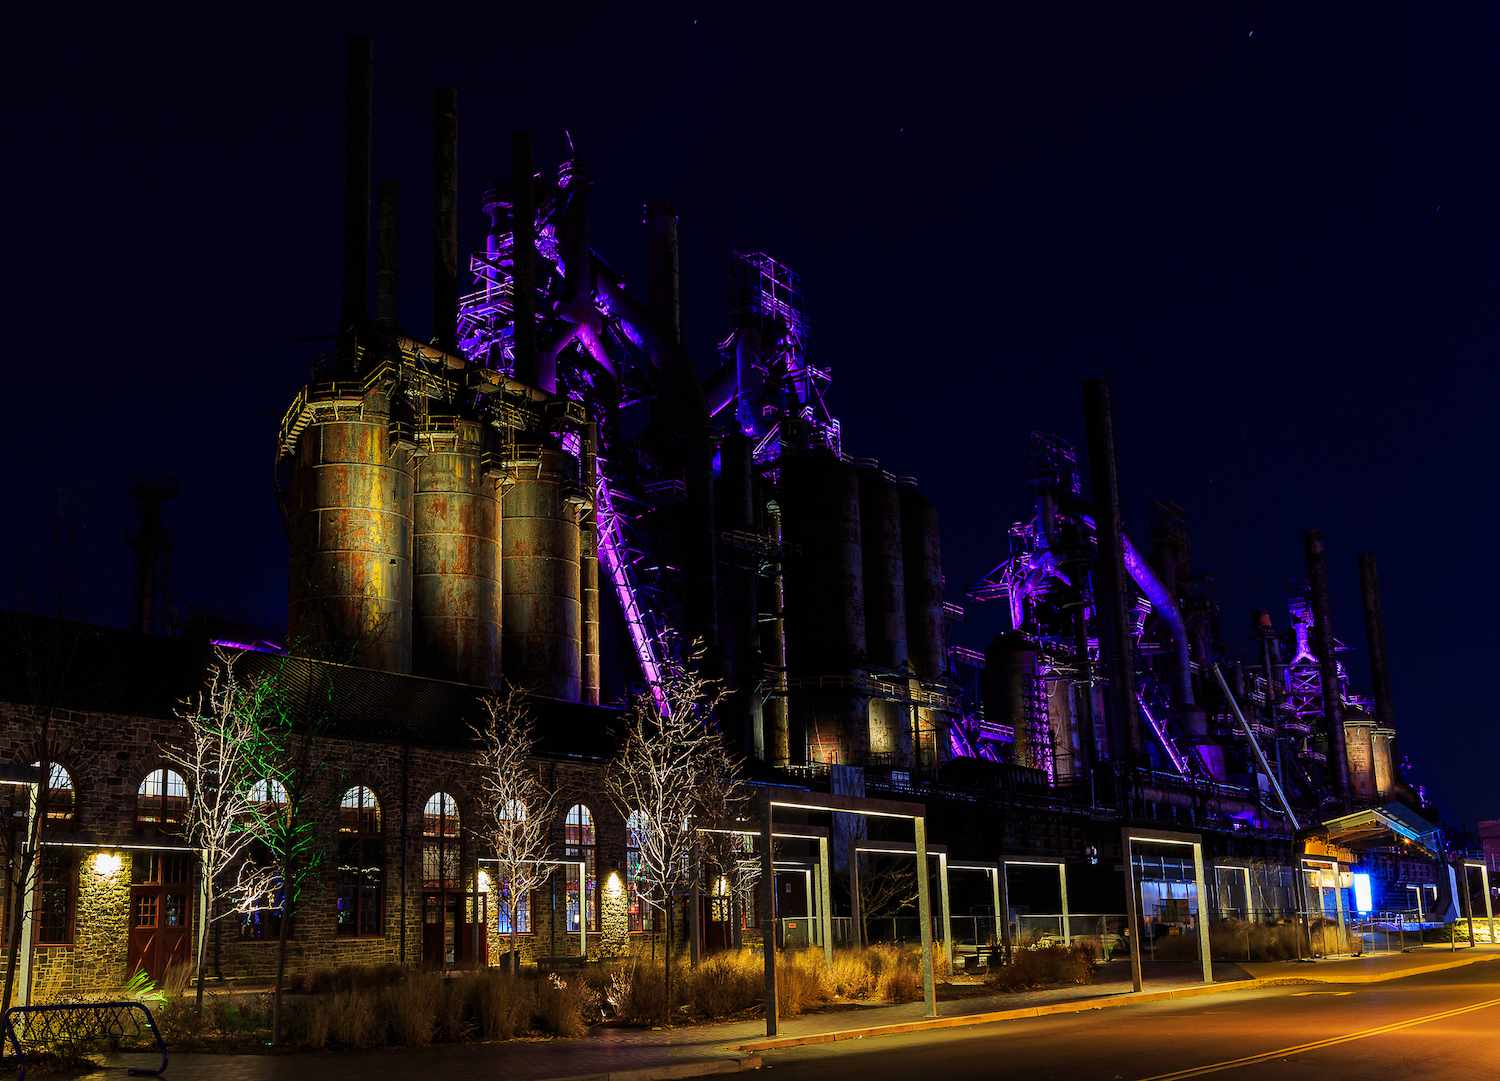 The renovated SteelStacks entrance at night with the furnaces lit up in purple